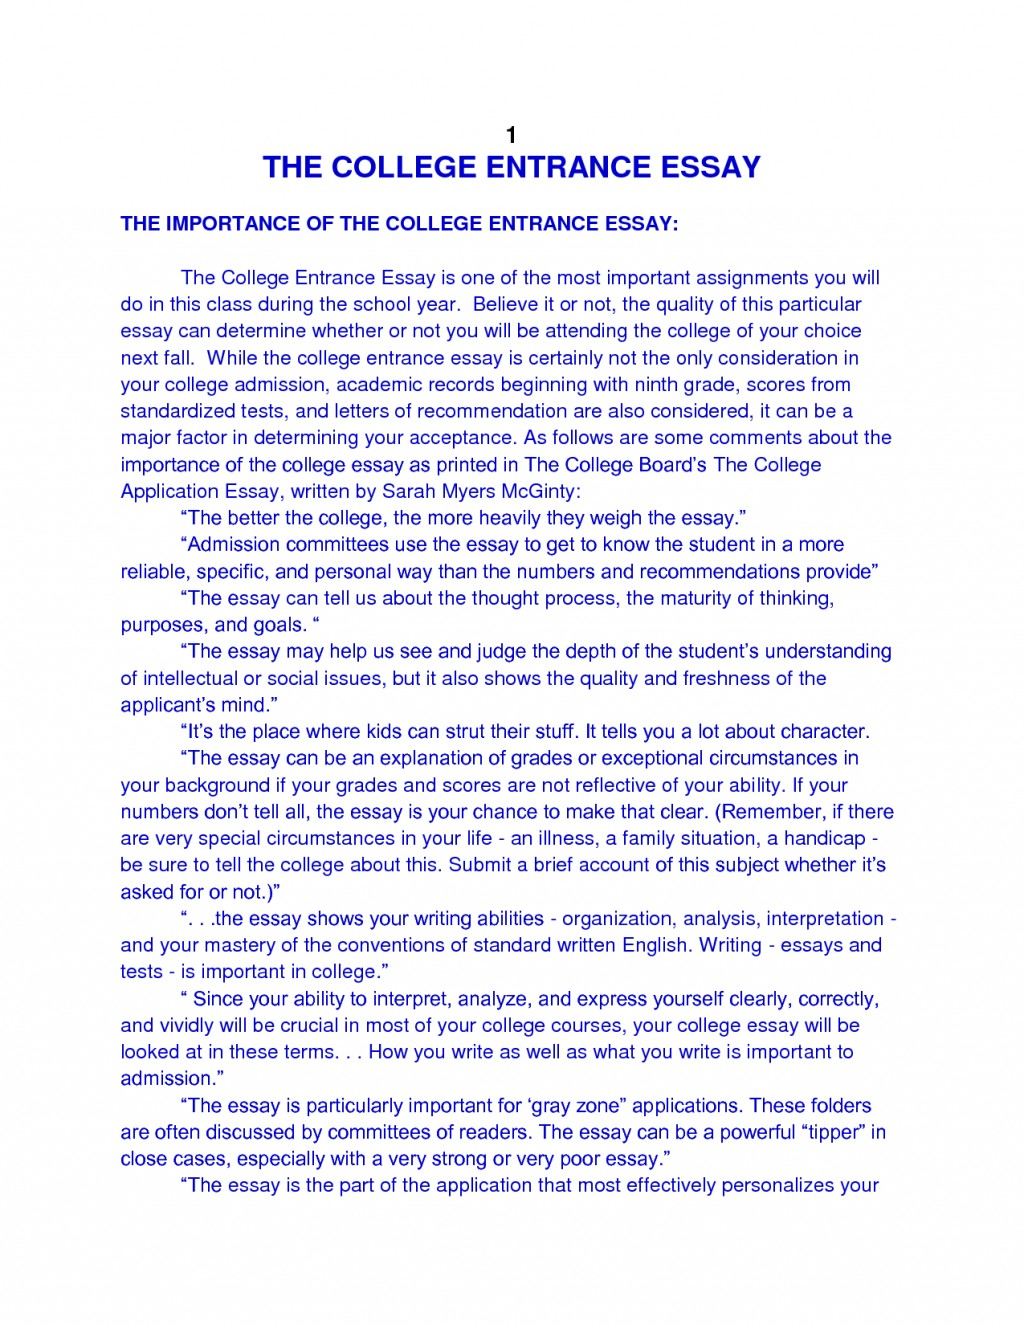 017 College Application Essays Format Admissions L Harvard Awful Business School That Worked Mba Examples Essay Prompts 2017 Large